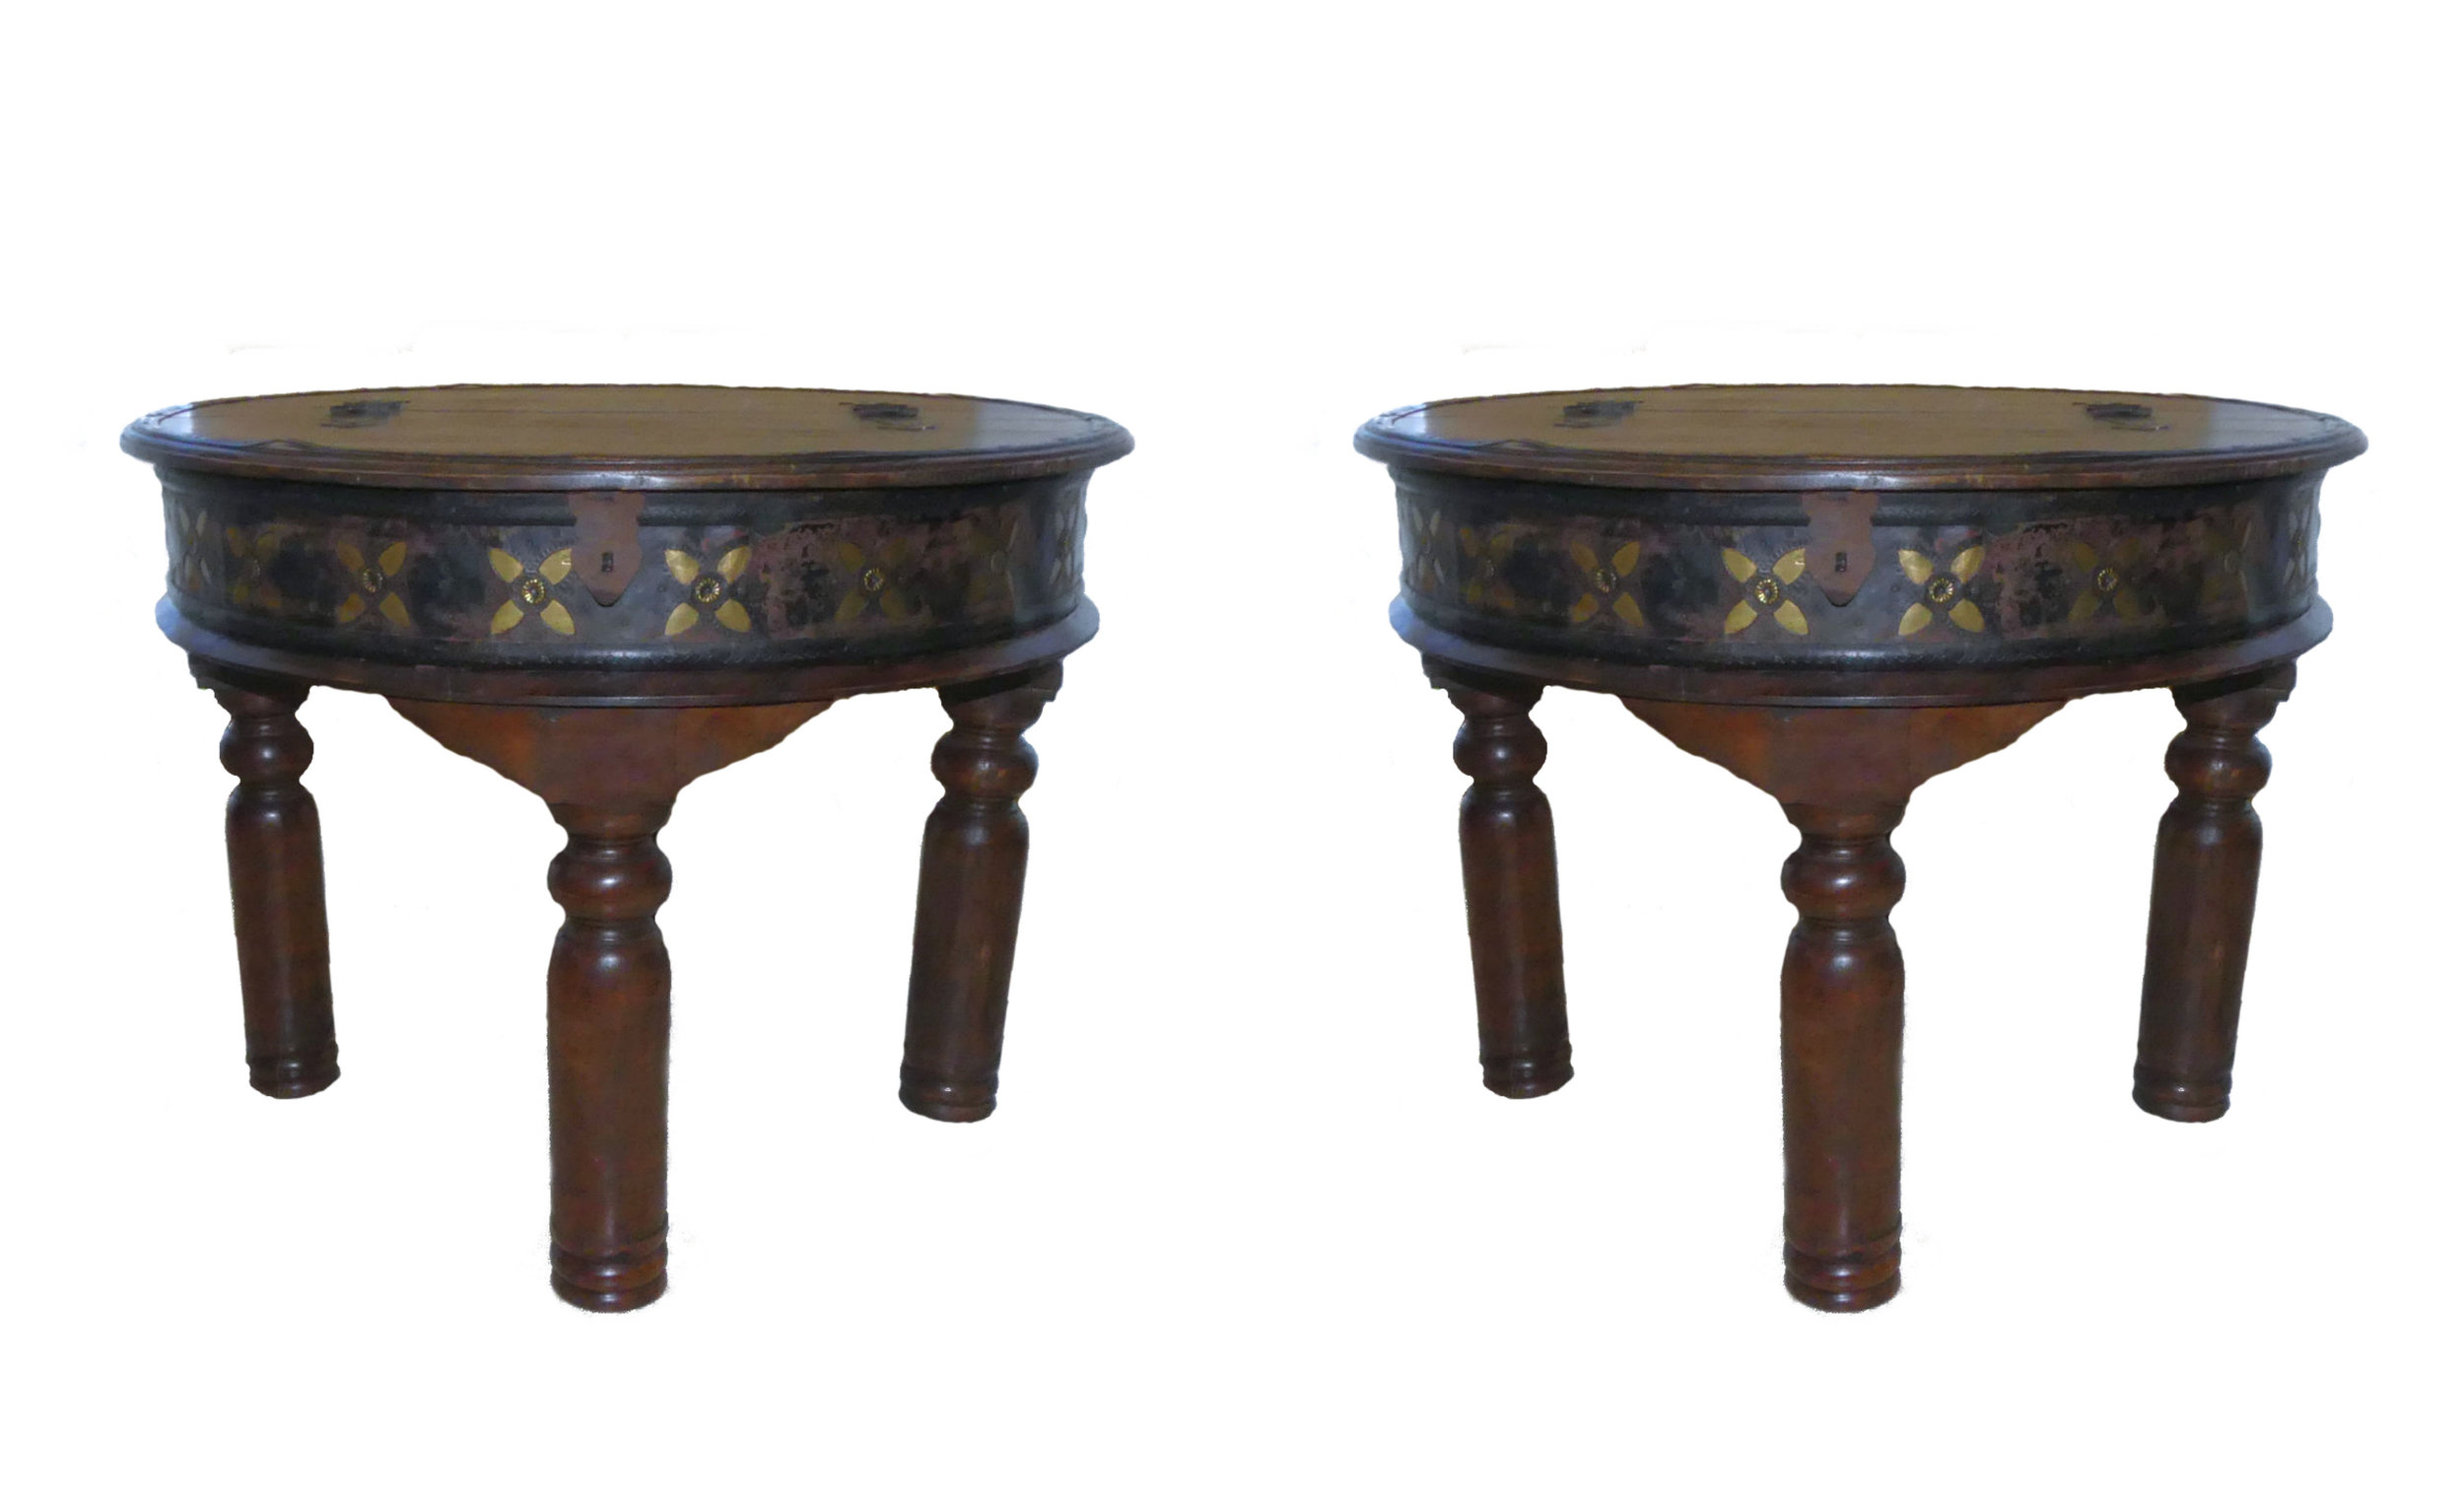 SOLD  Pair of 2 Rustic End Tables with Storage